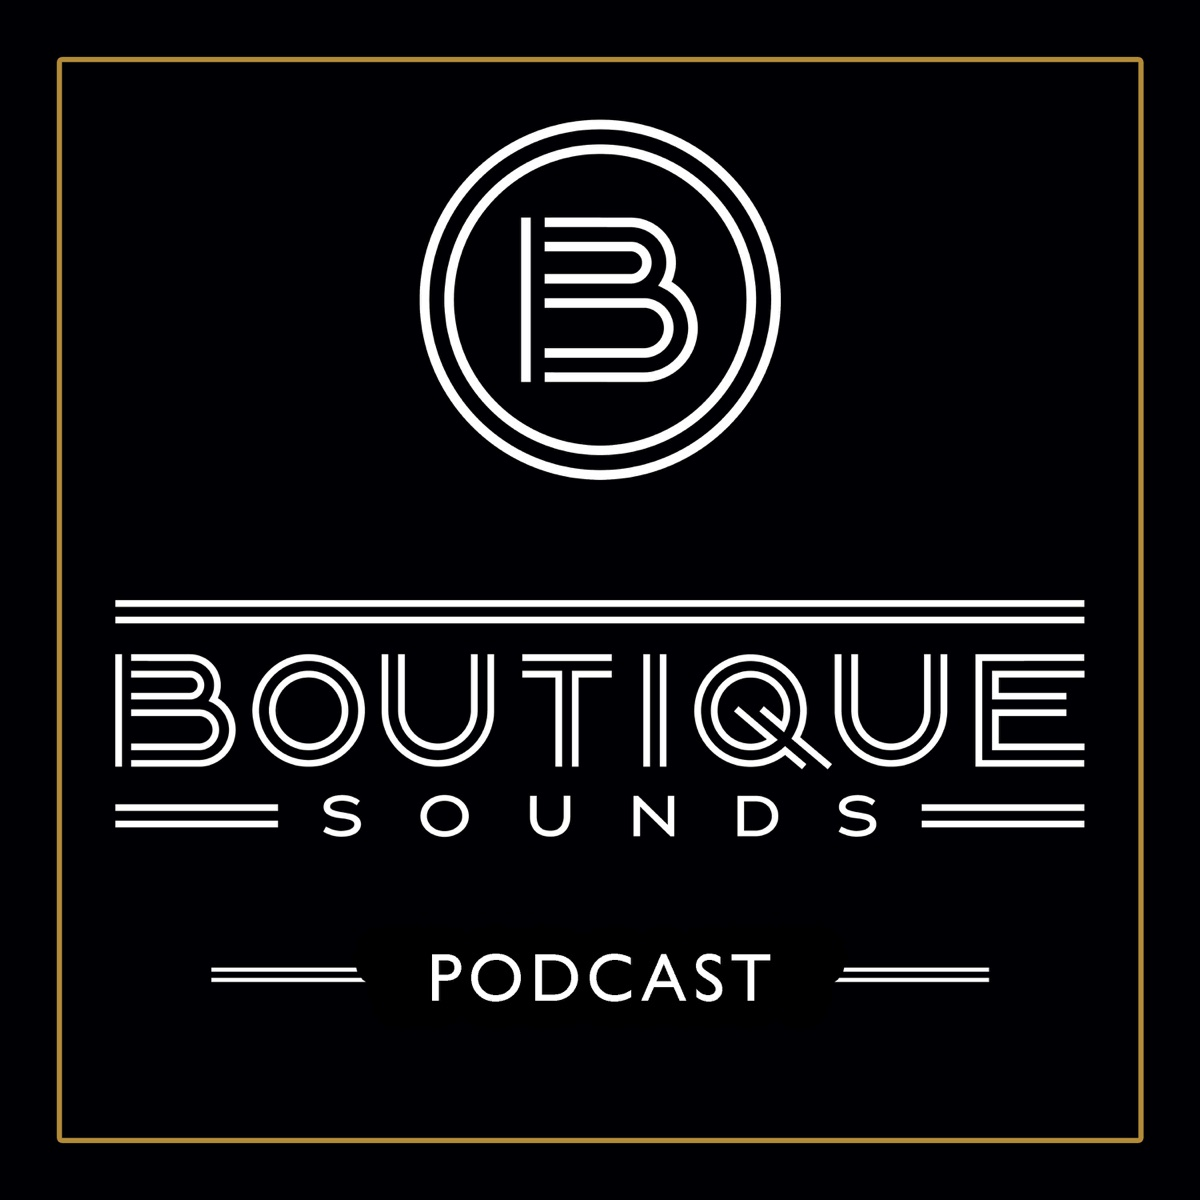 Boutique Sounds Podcast